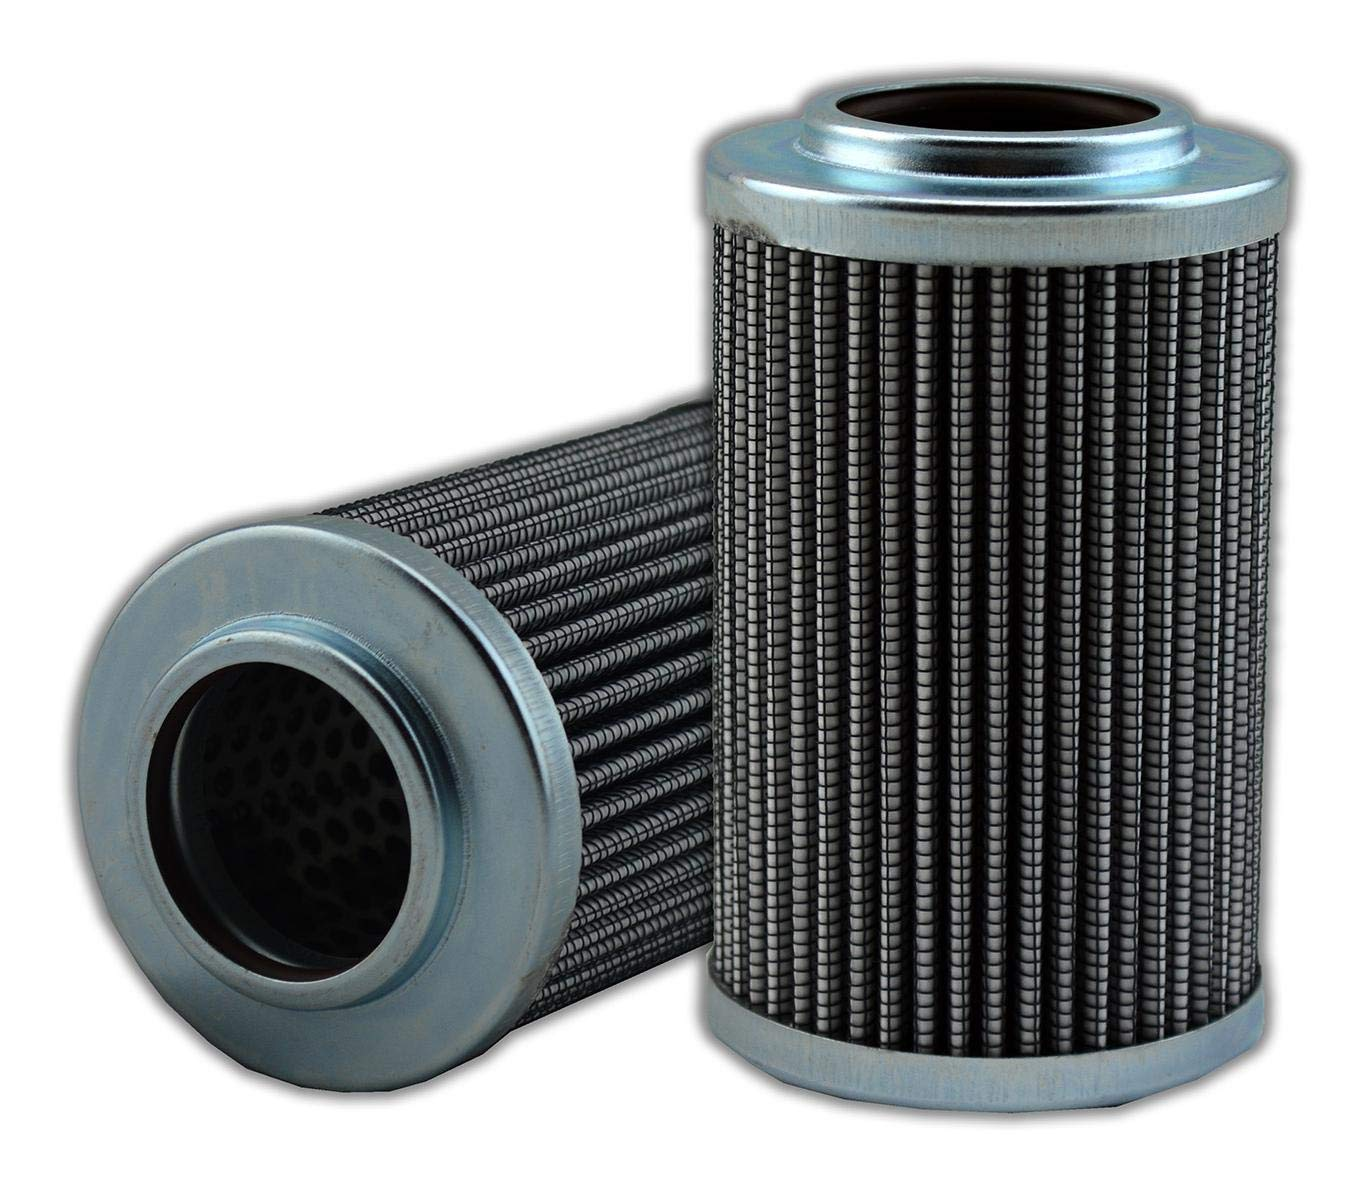 REXROTH R928005855 Replacement Hydraulic Filter from Big Filter Store by Big Filter Store